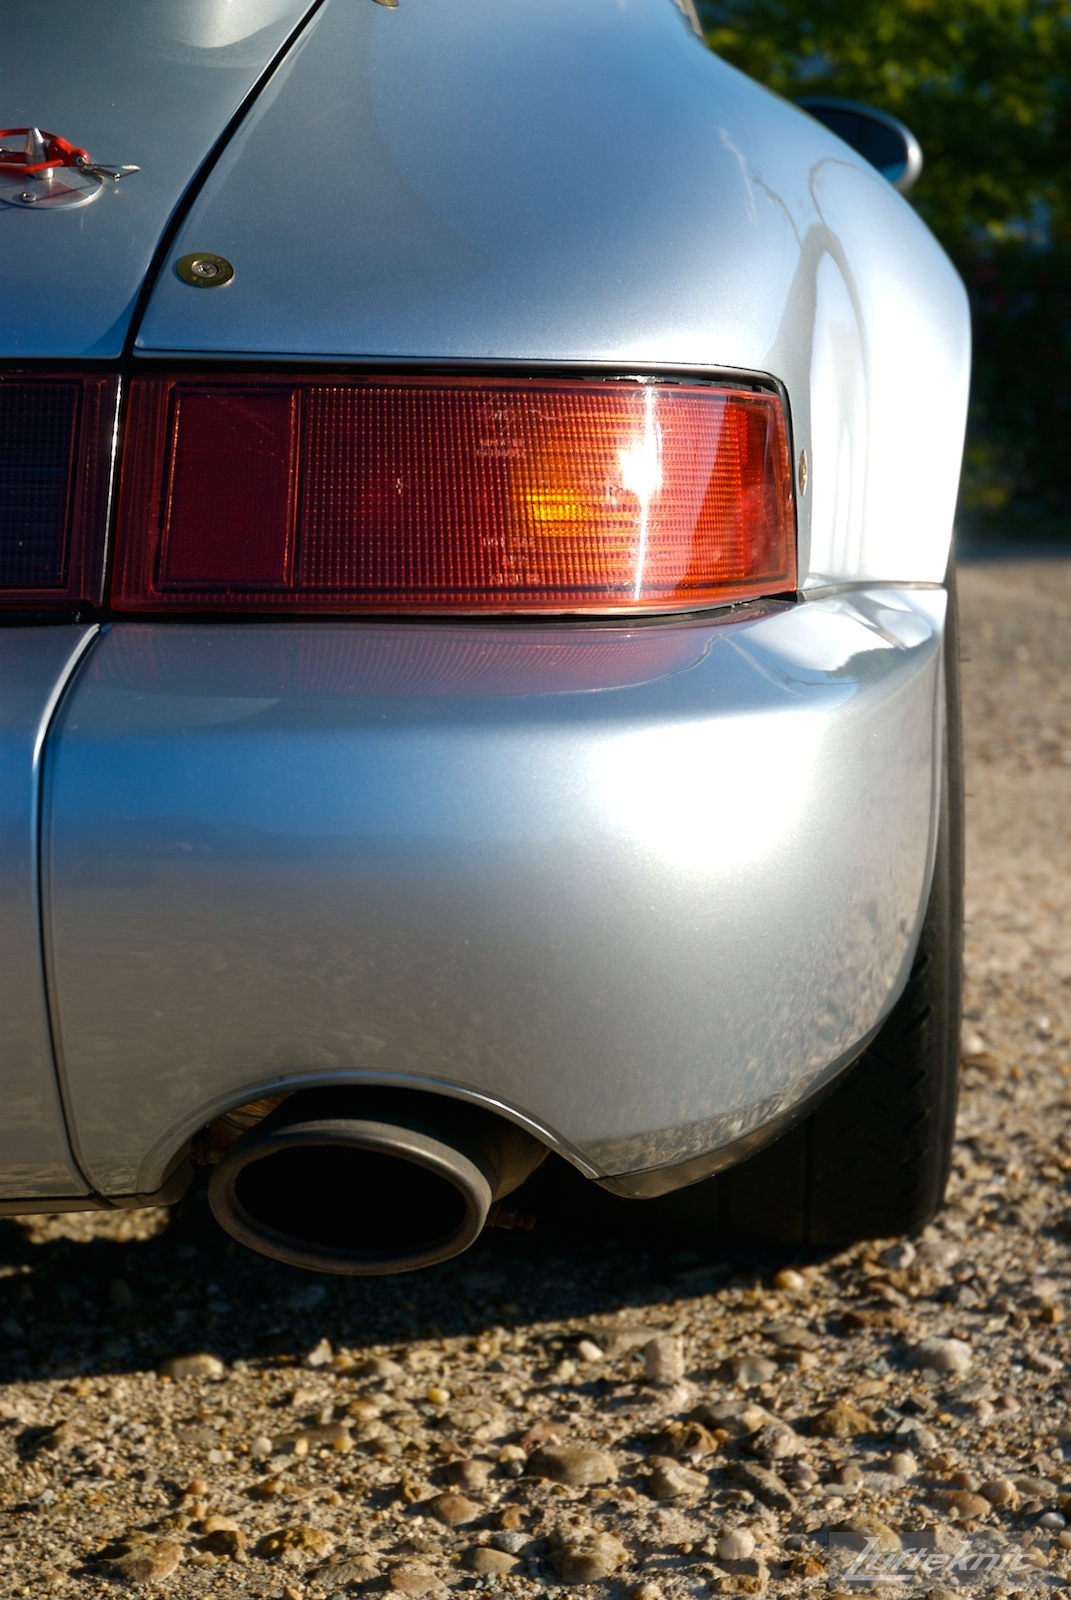 A rear detail shot of the bumper and exhaust tip on the 964 RS America.